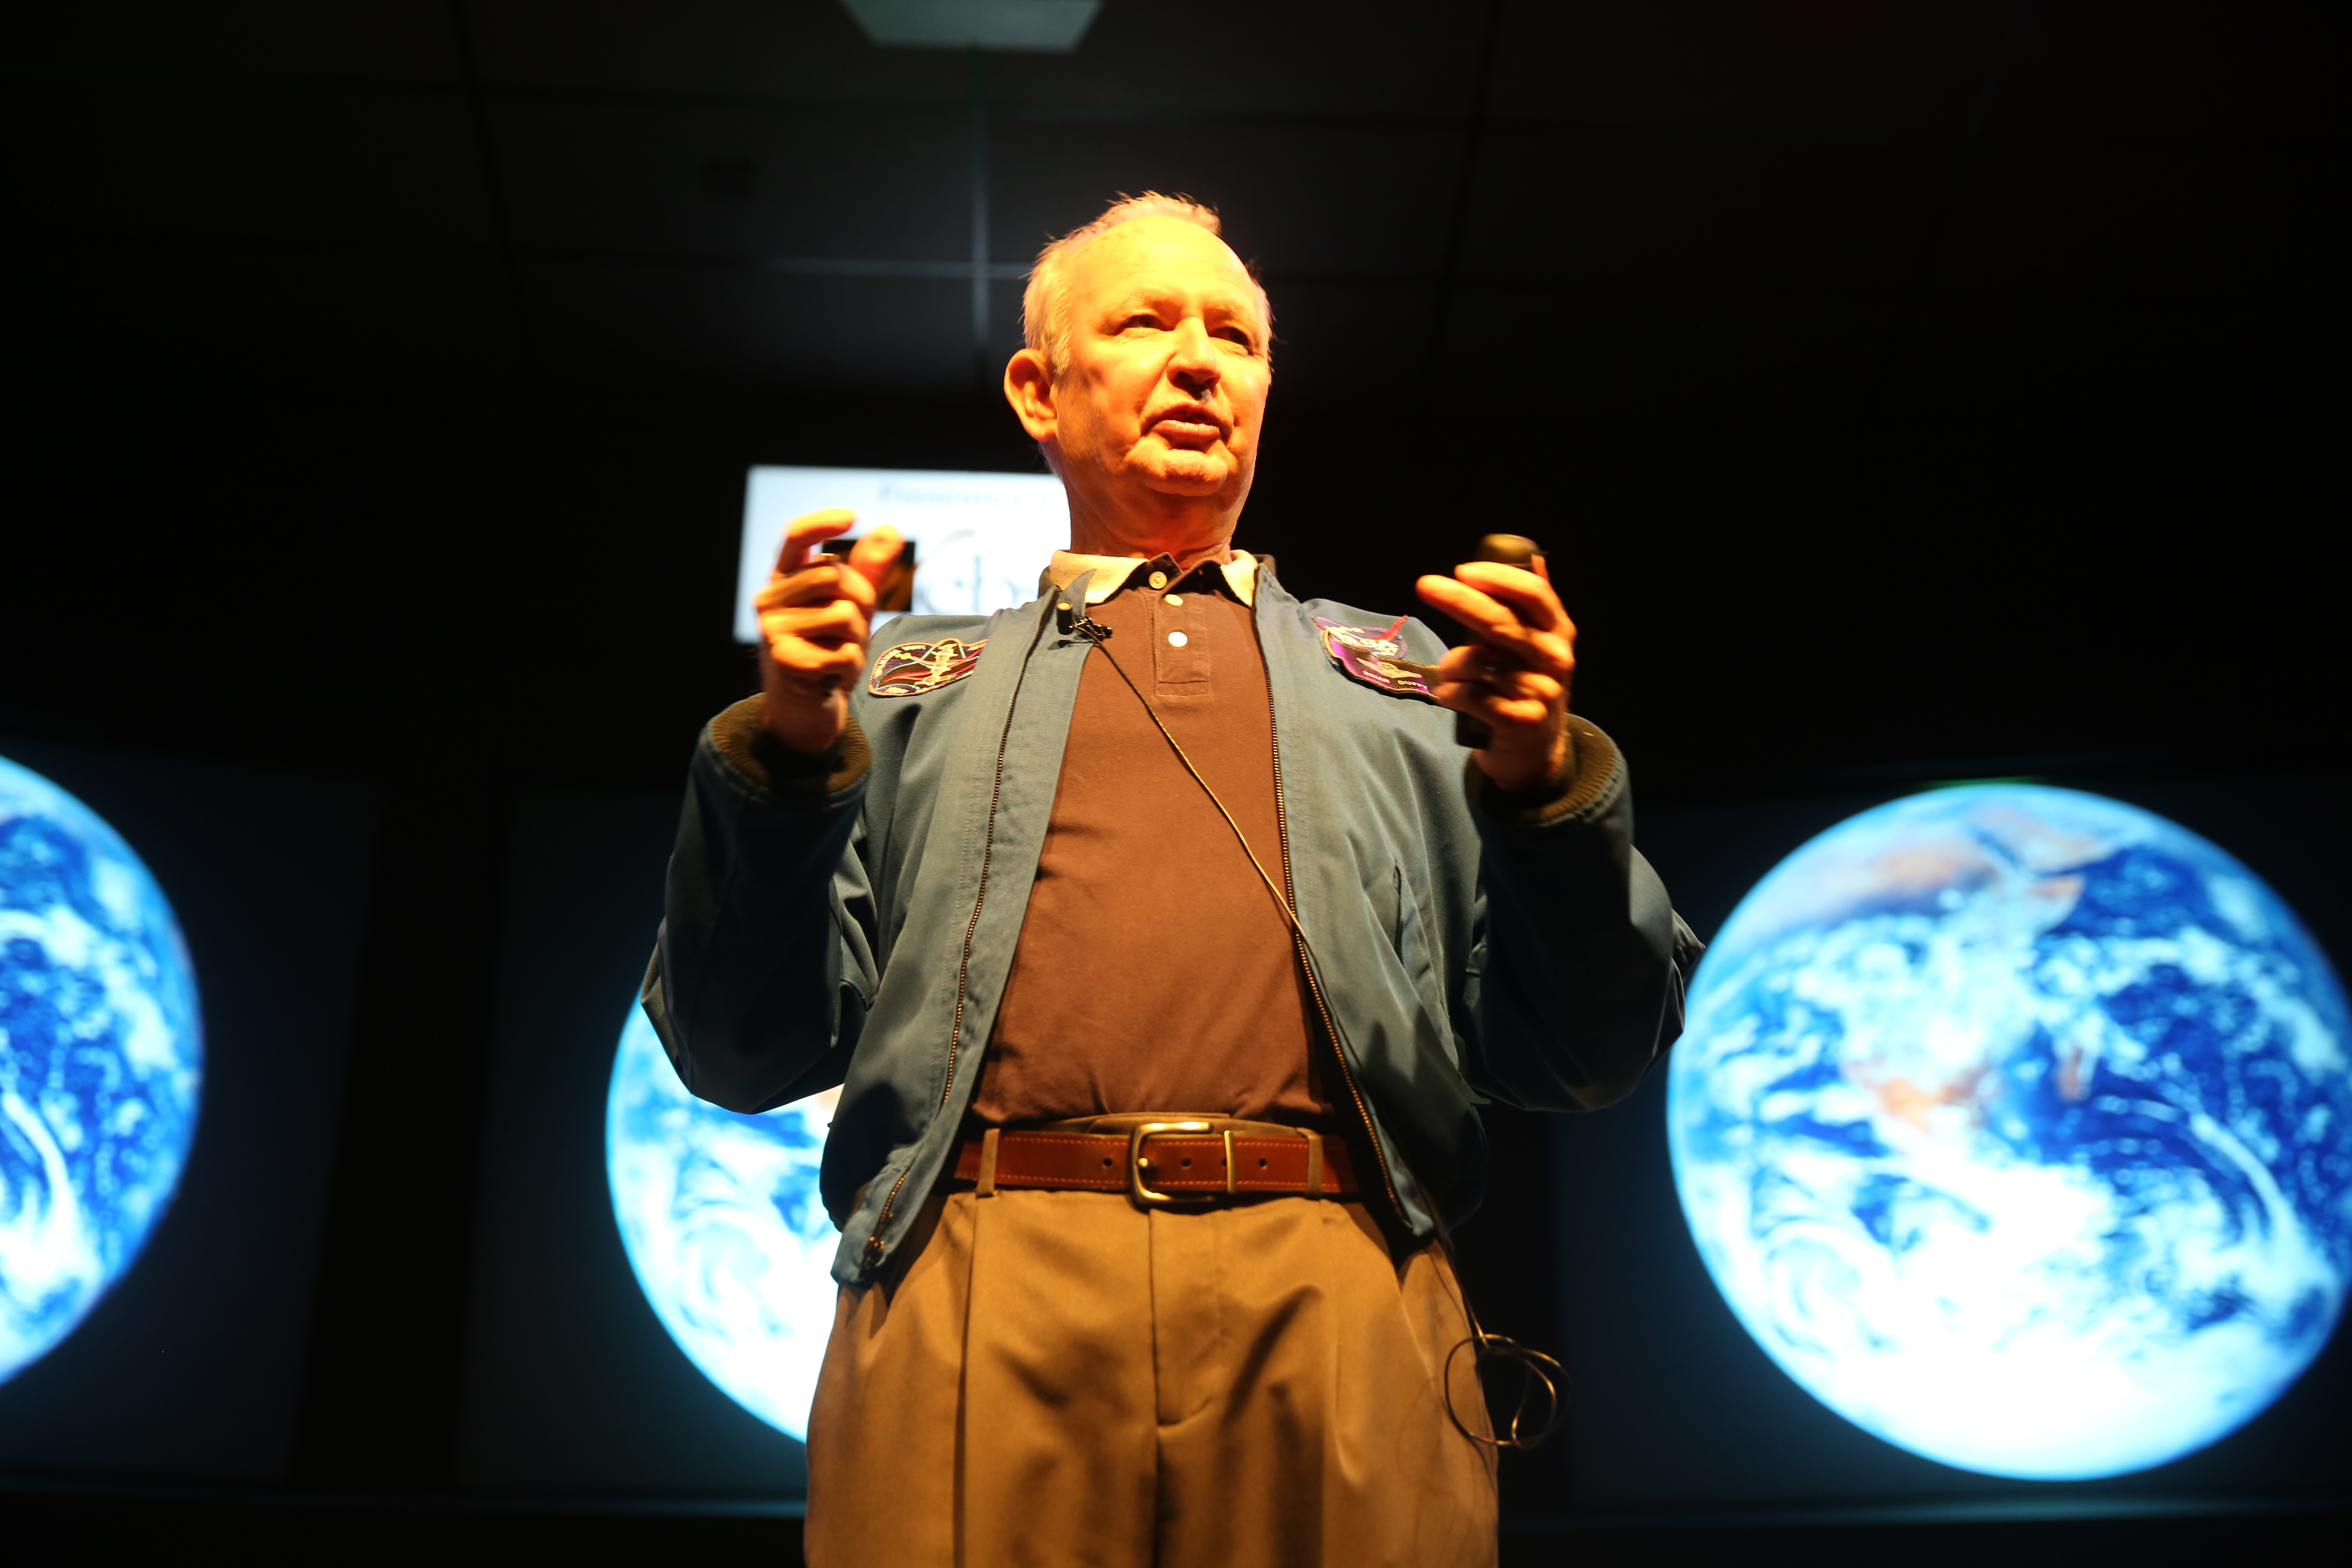 Astronaut Brian Duffy at Space Center Houston